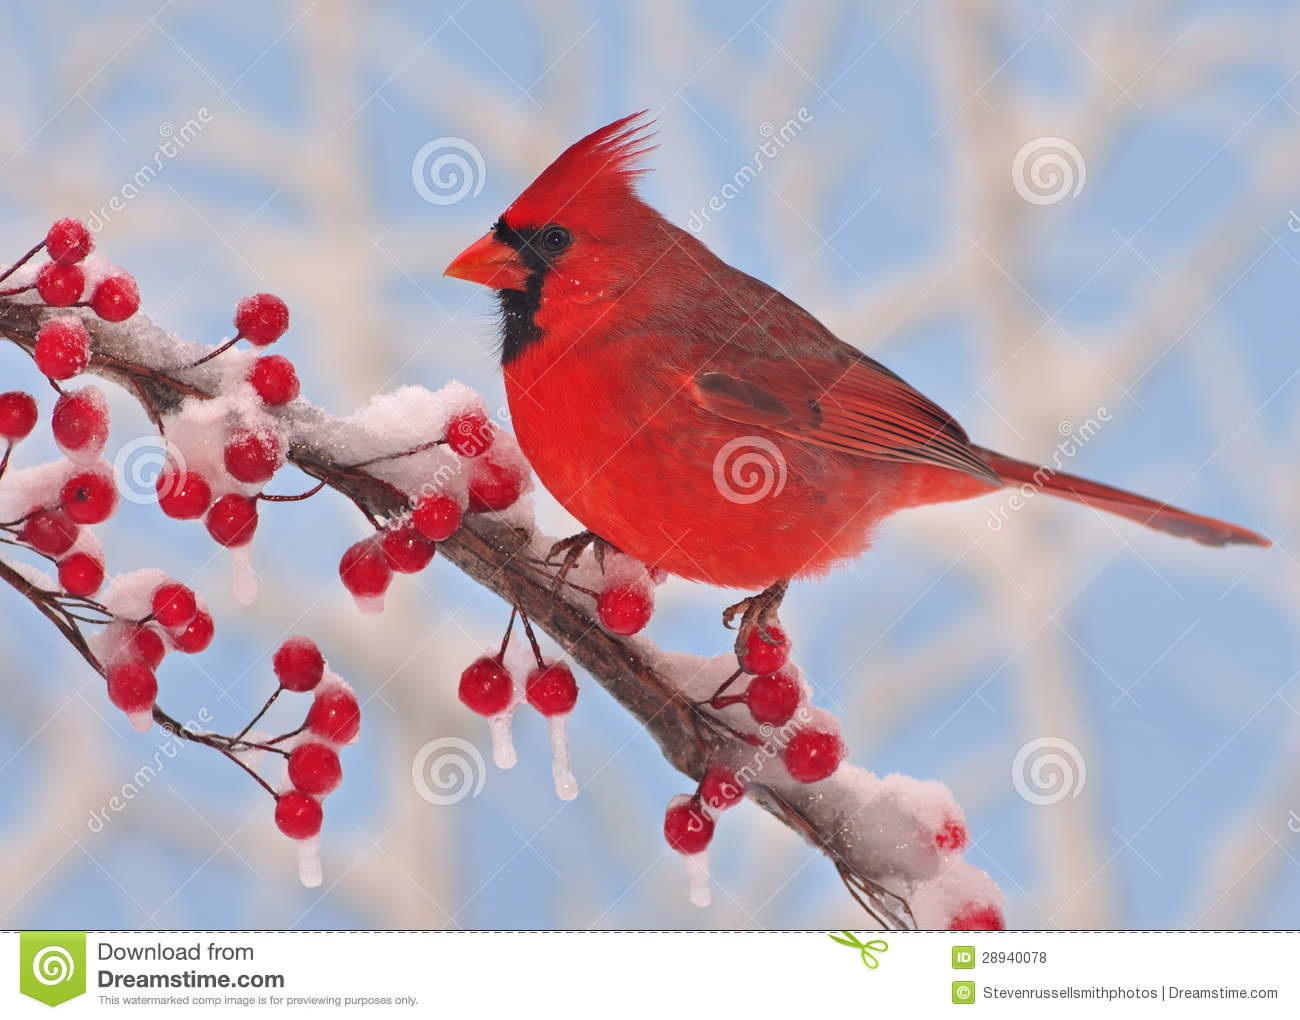 Winter Male Northern Cardinal On A Snowy Branch Full Of Bright Red